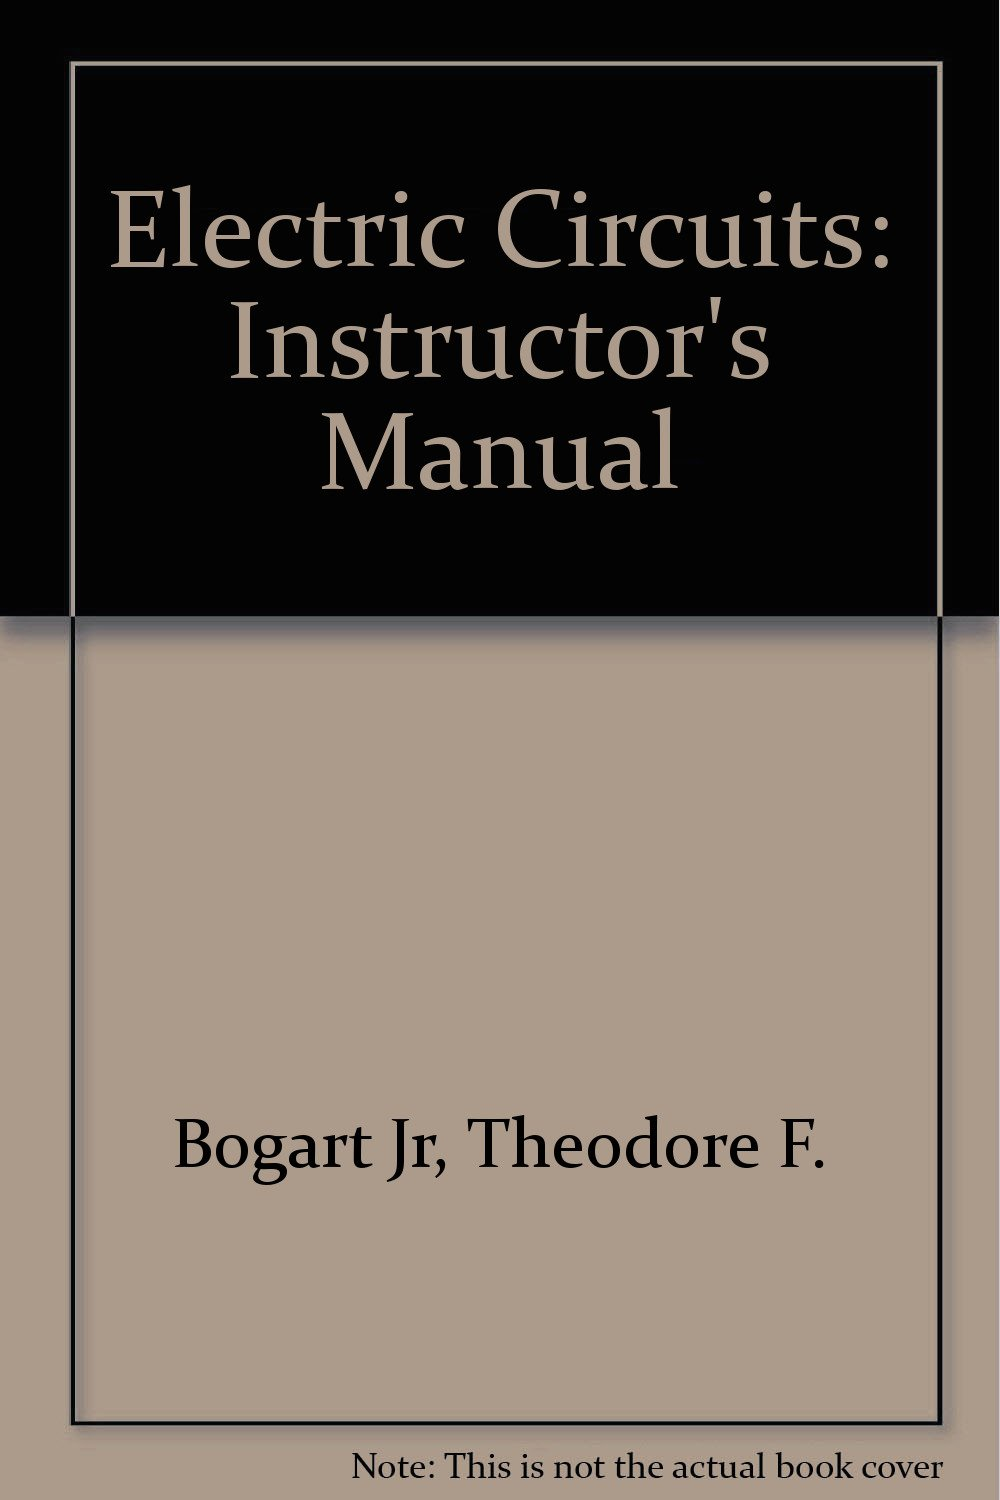 Buy Electric Circuits: Instructor's Manual Book Online at Low Prices in  India | Electric Circuits: Instructor's Manual Reviews & Ratings - Amazon.in